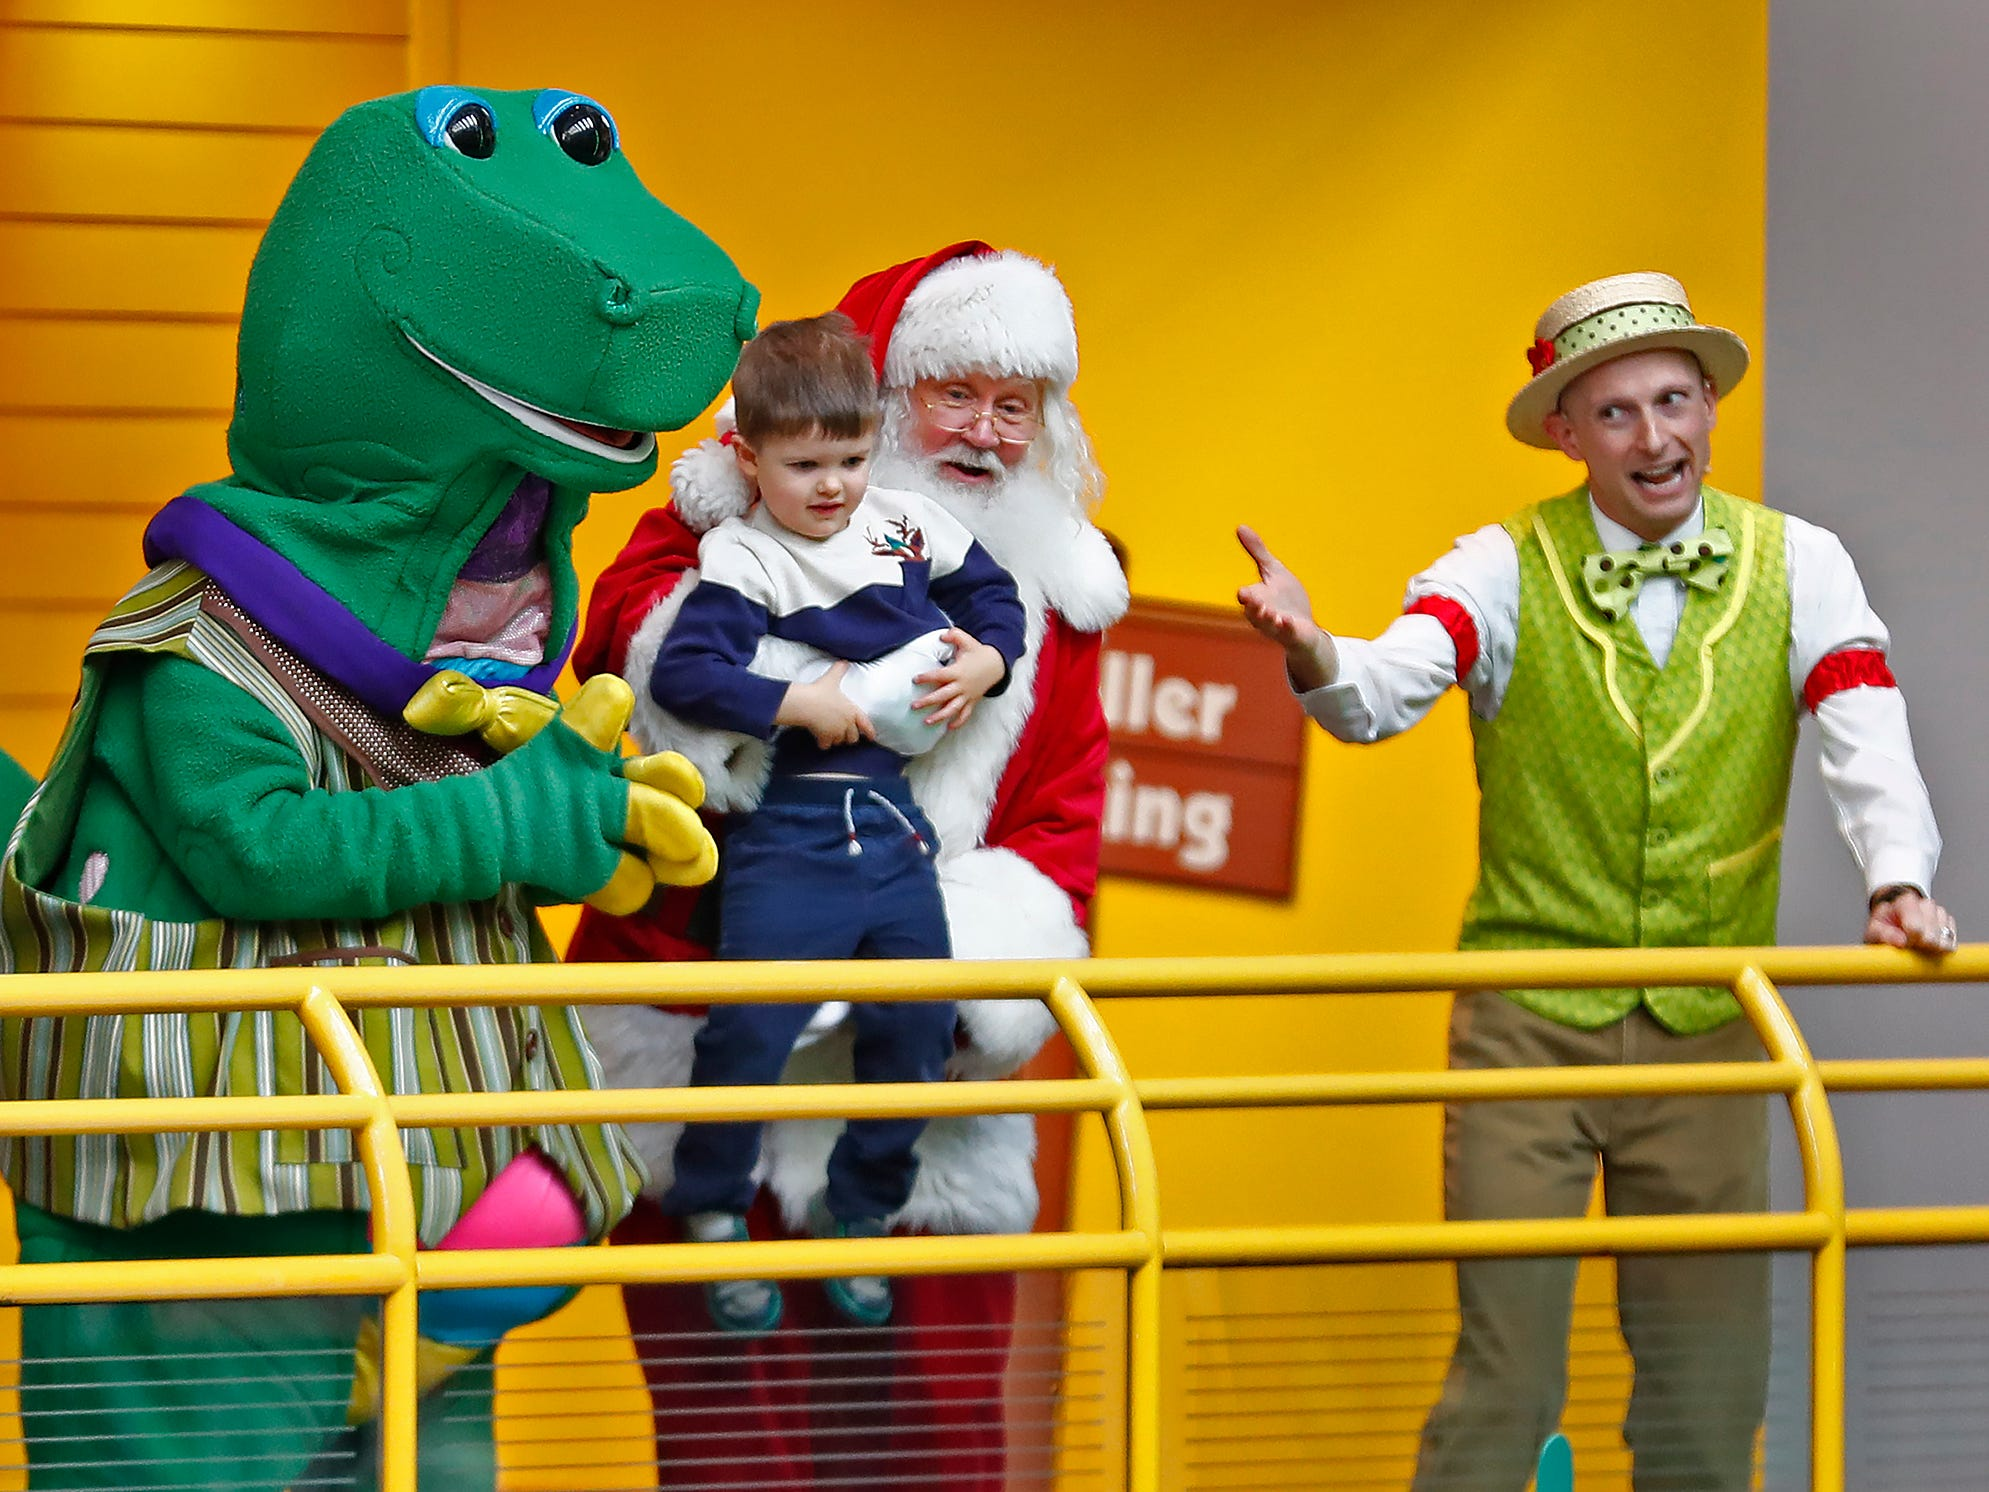 Santa, holding four-year-old Henri Duval, gets ready to slide down the Yule Slide at the Children's Museum of Indianapolis, Friday, Nov. 23, 2018. Chorduroys' leader Matt Anderson, right, introduces them, along with the museum mascot, Rex.